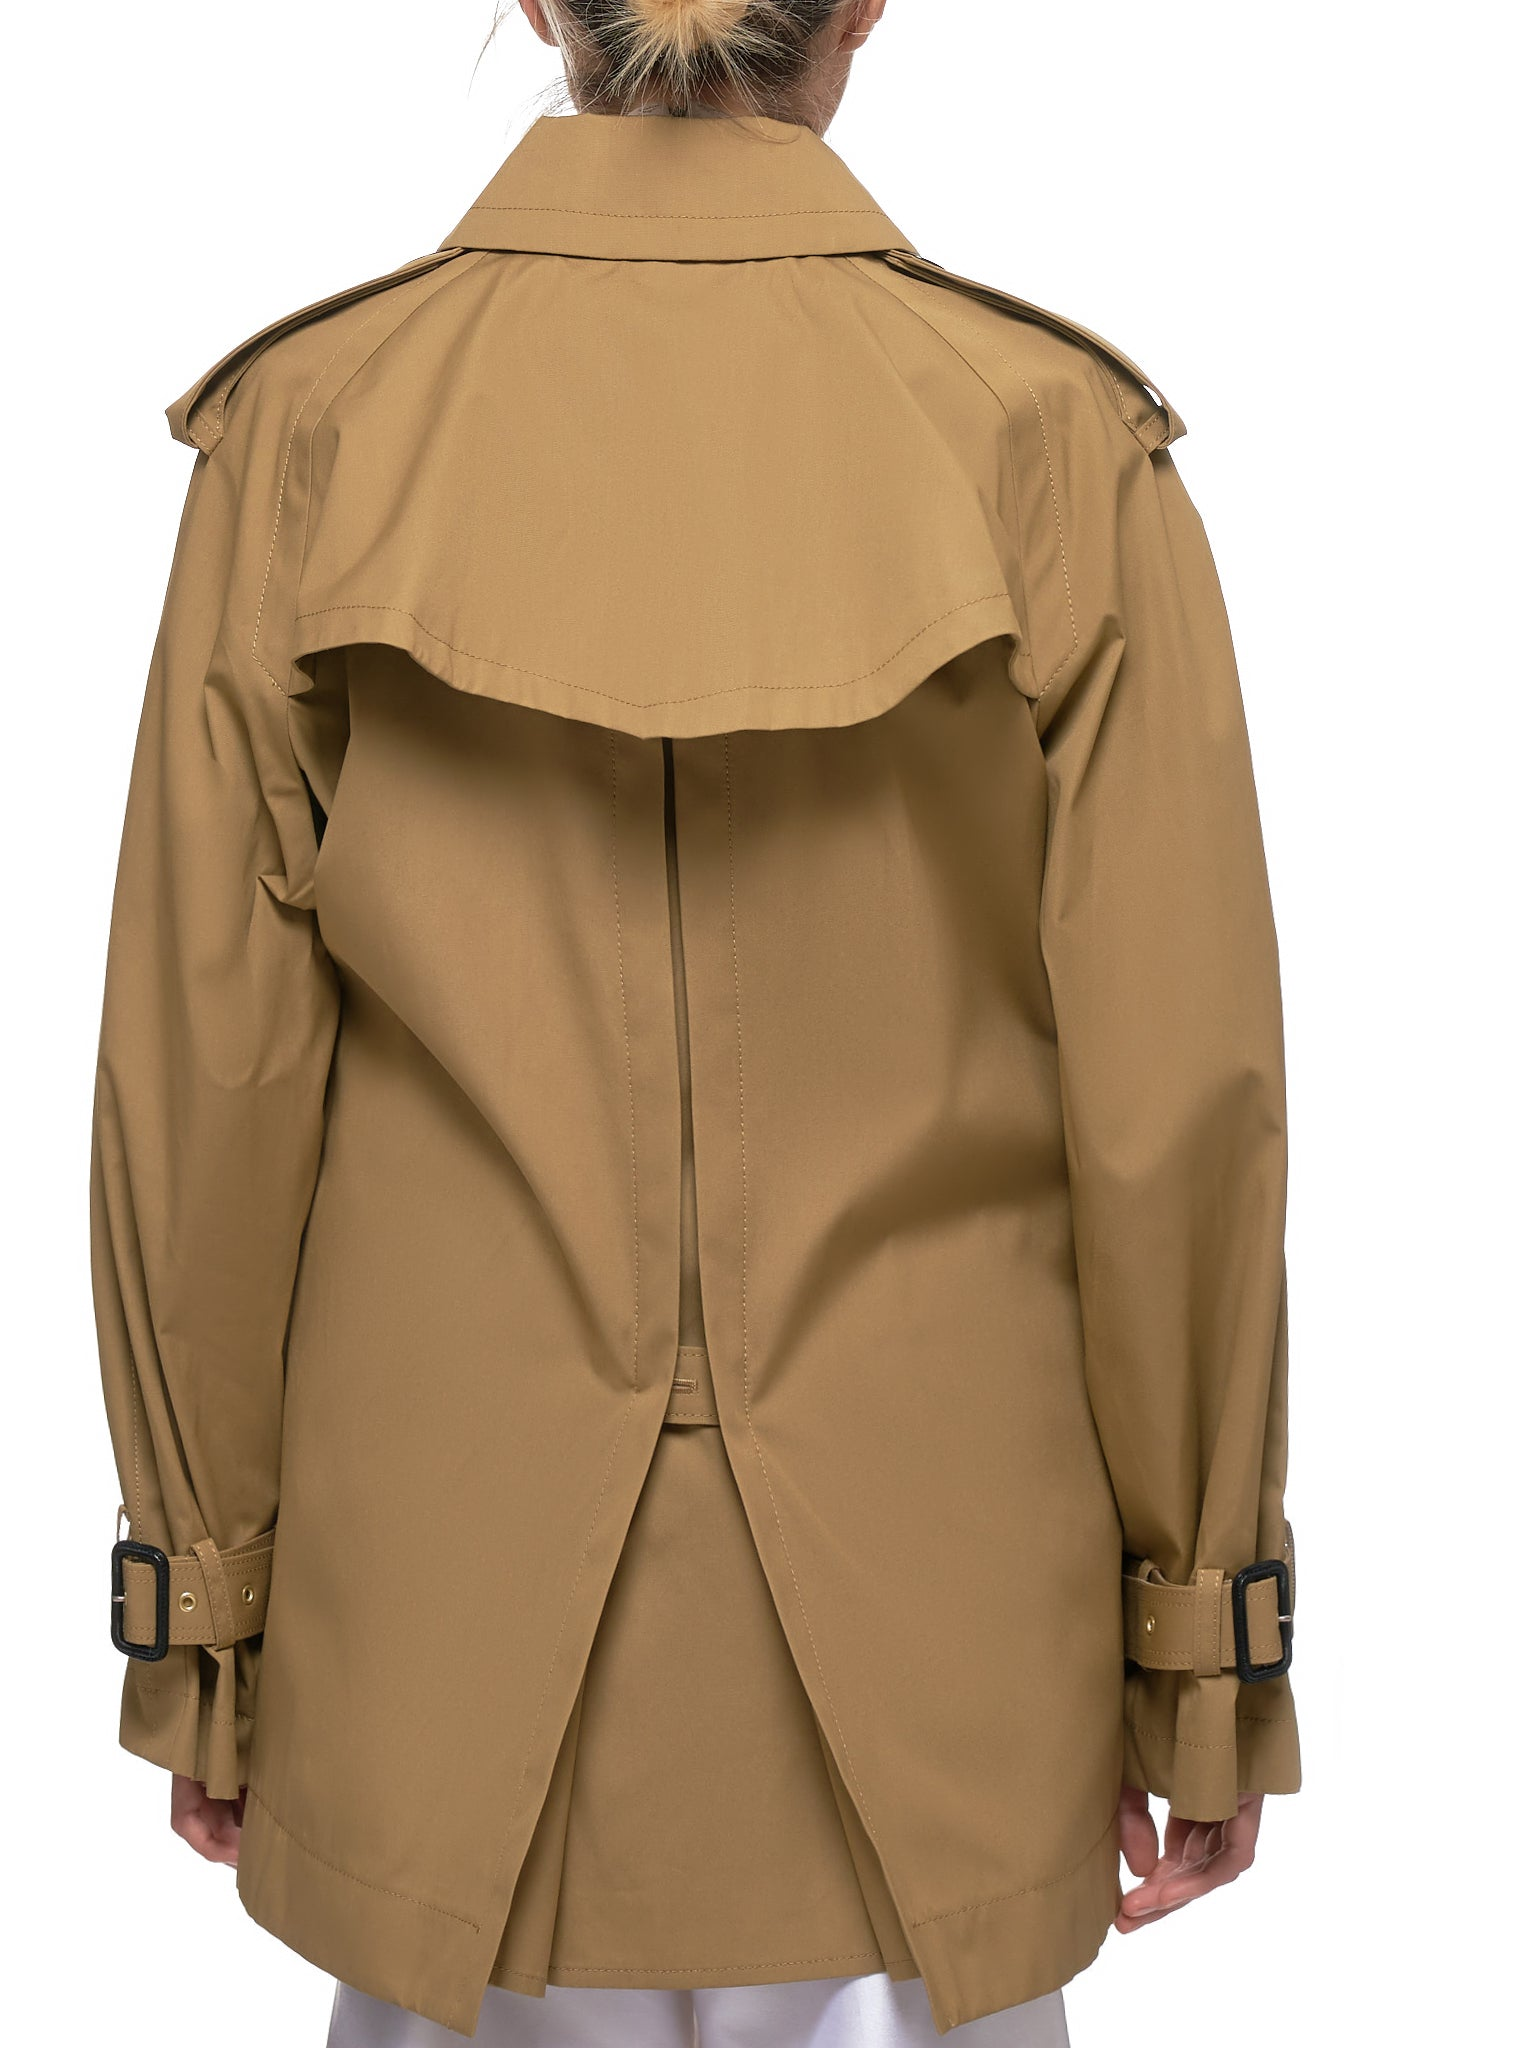 Double Breasted Jacket (19-04704-BEIGE-KHAKI)